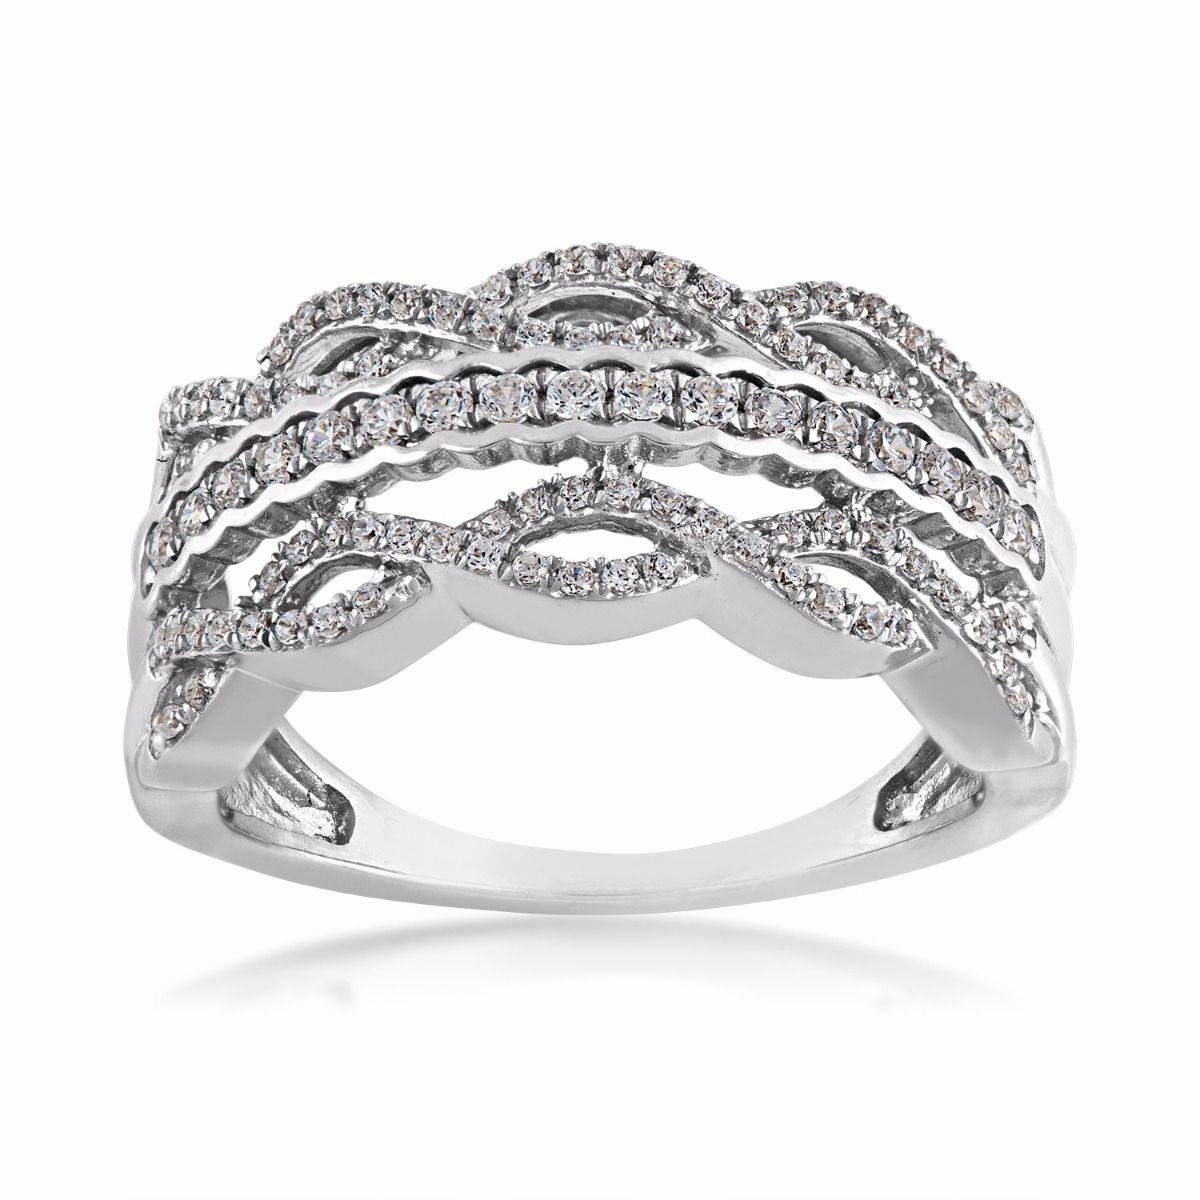 Ladies Diamond Anniversary Ring | Riddle's Jewelry Intended For Recent Diamond Anniversary Rings (View 21 of 25)